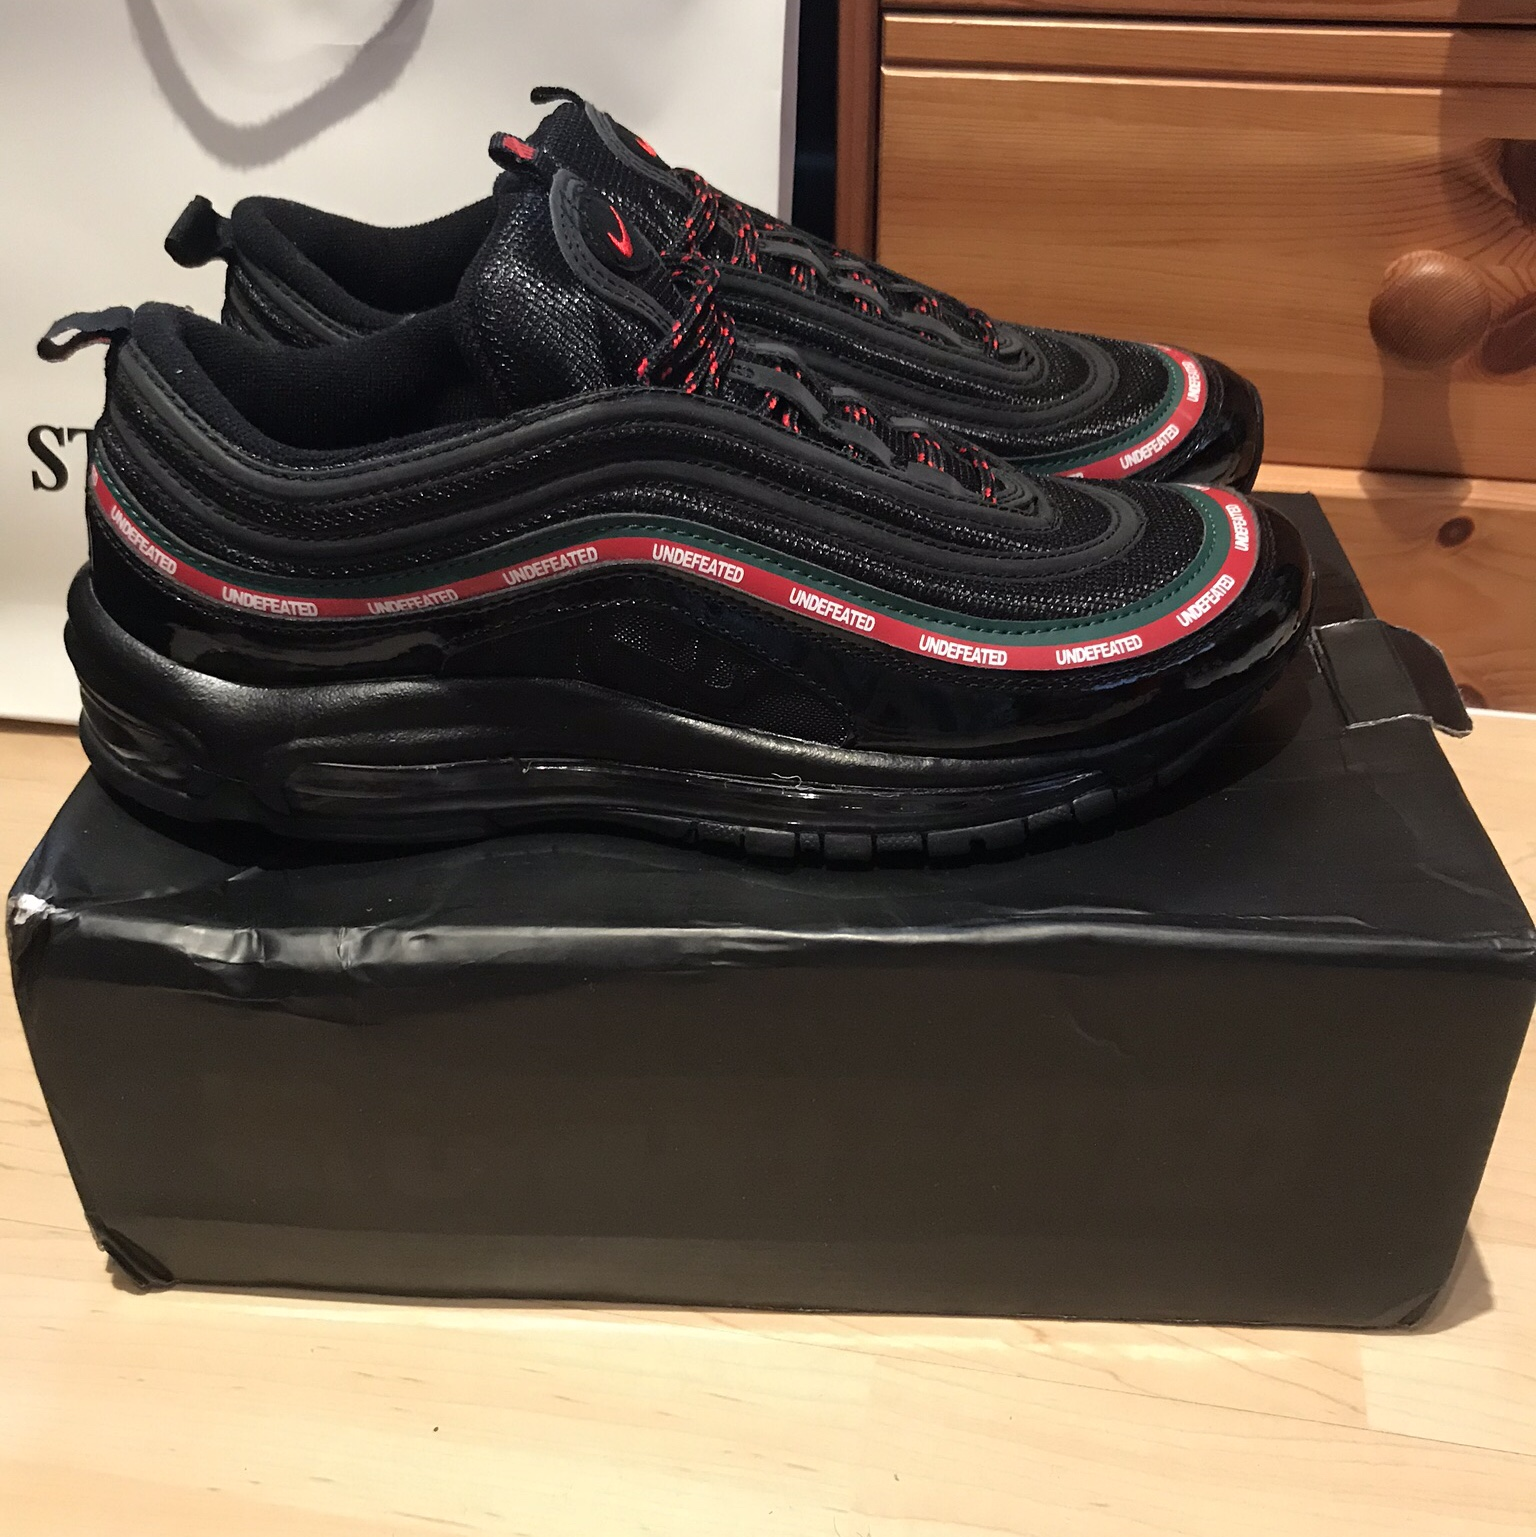 Nike Air Max 97 X undefeated dead stock. Brand new Depop